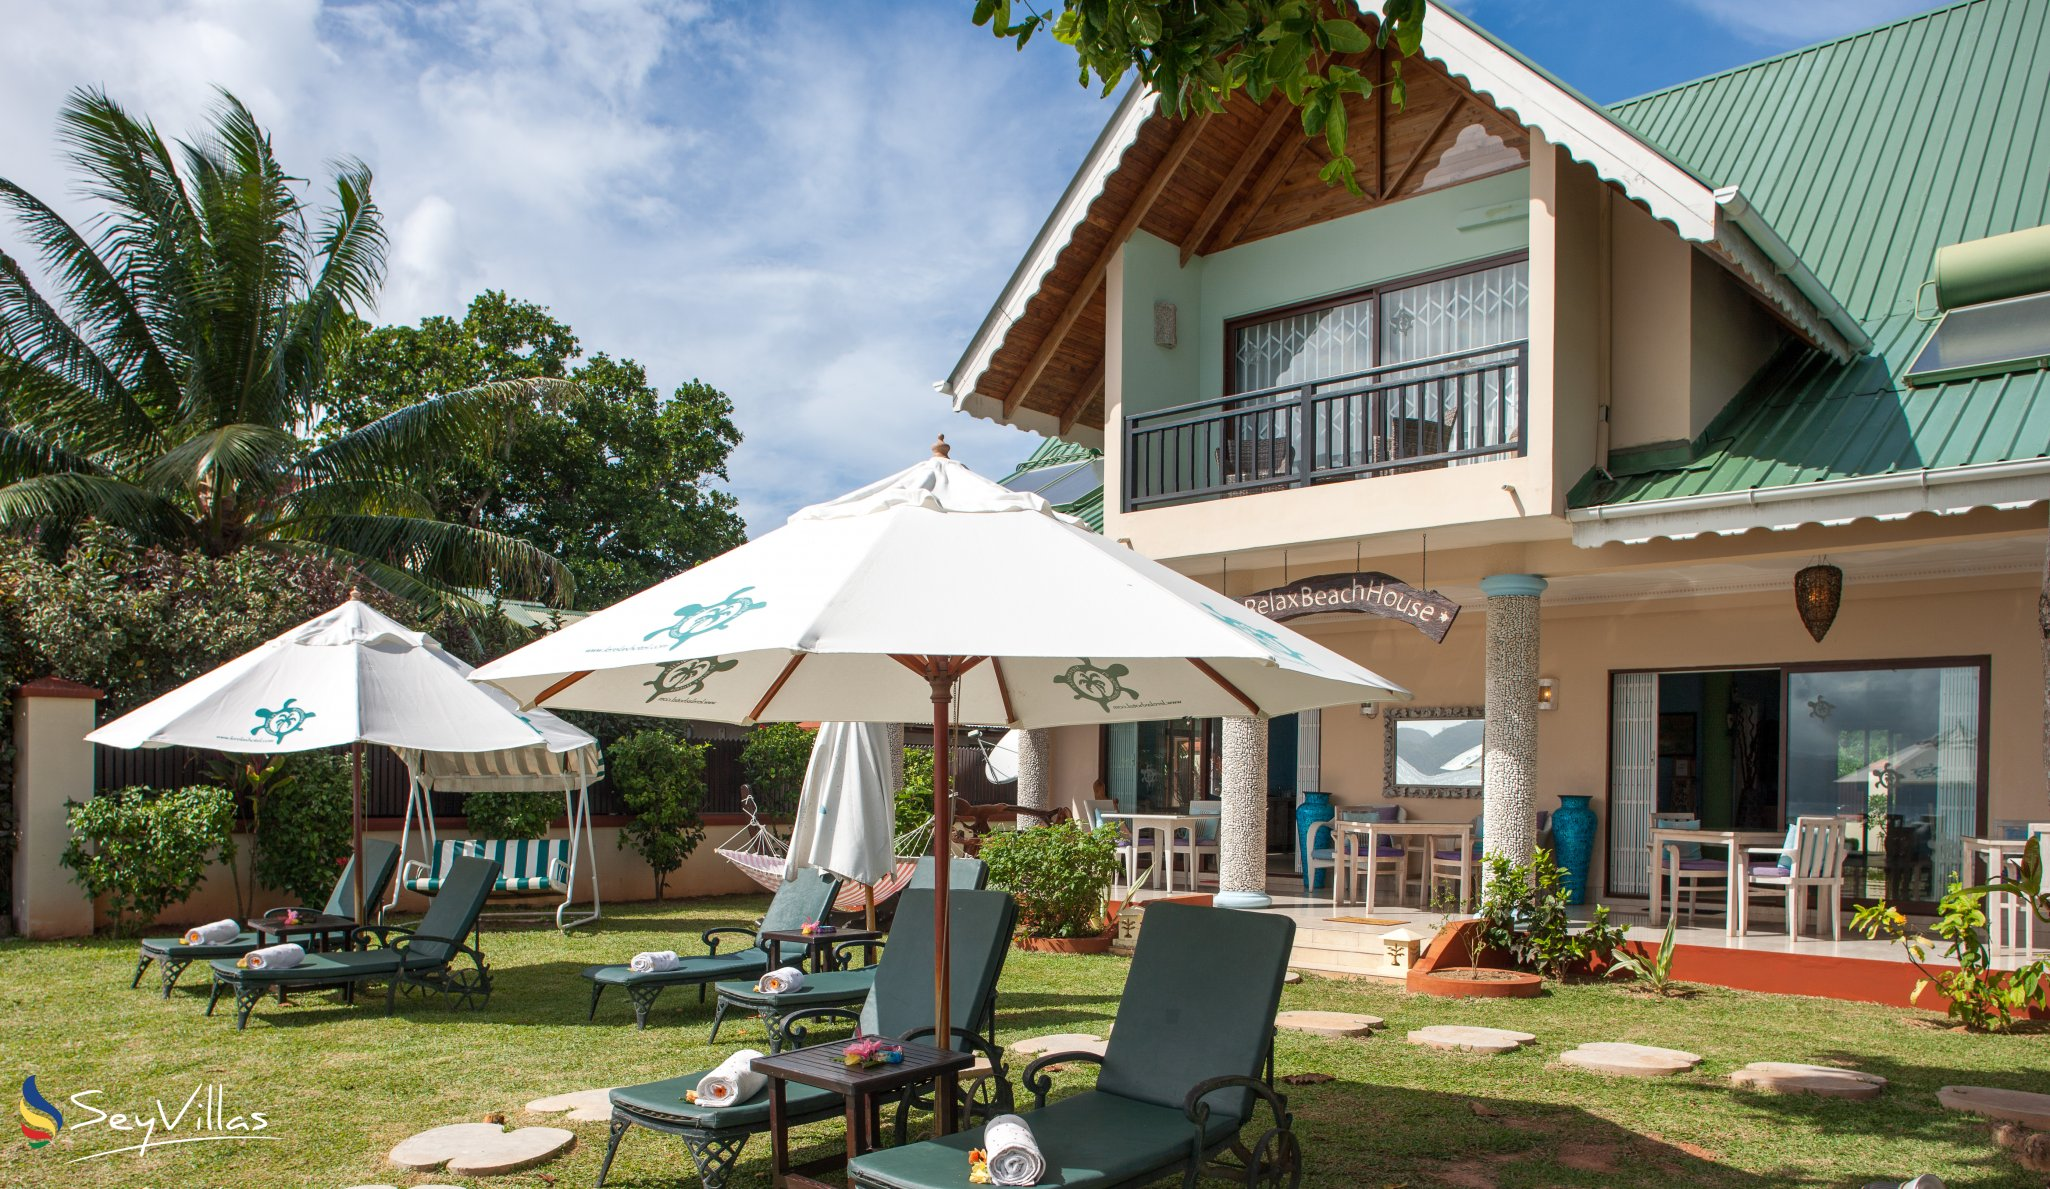 Kreolische Küche Reunion Small Hotel Quotle Relax Beach House Quot Auf La Digue